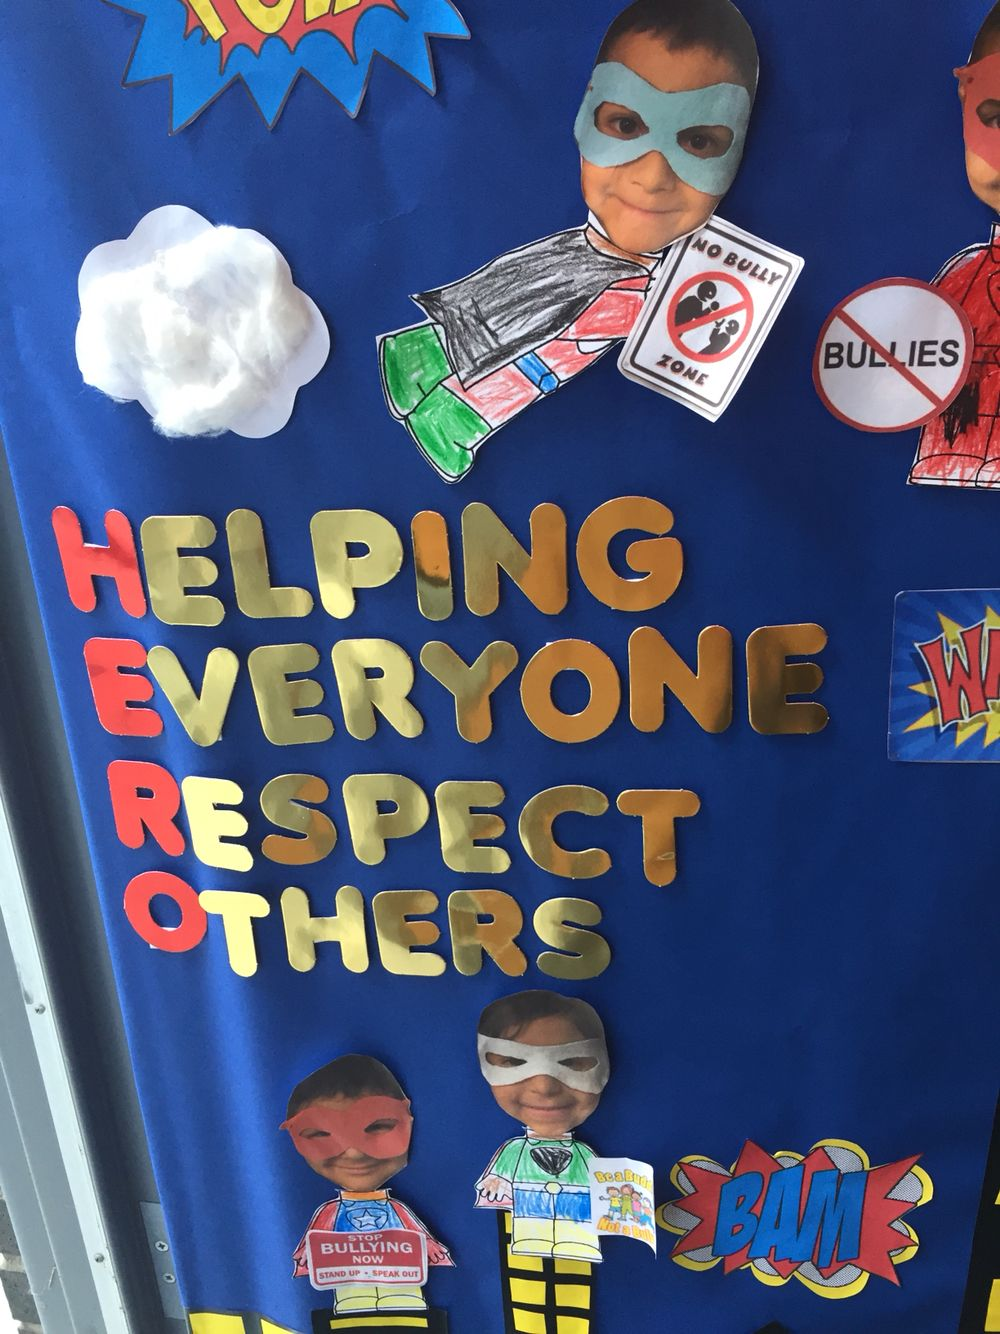 Anti Bullying Door Decoration | Anti Bullying | Pinterest ...